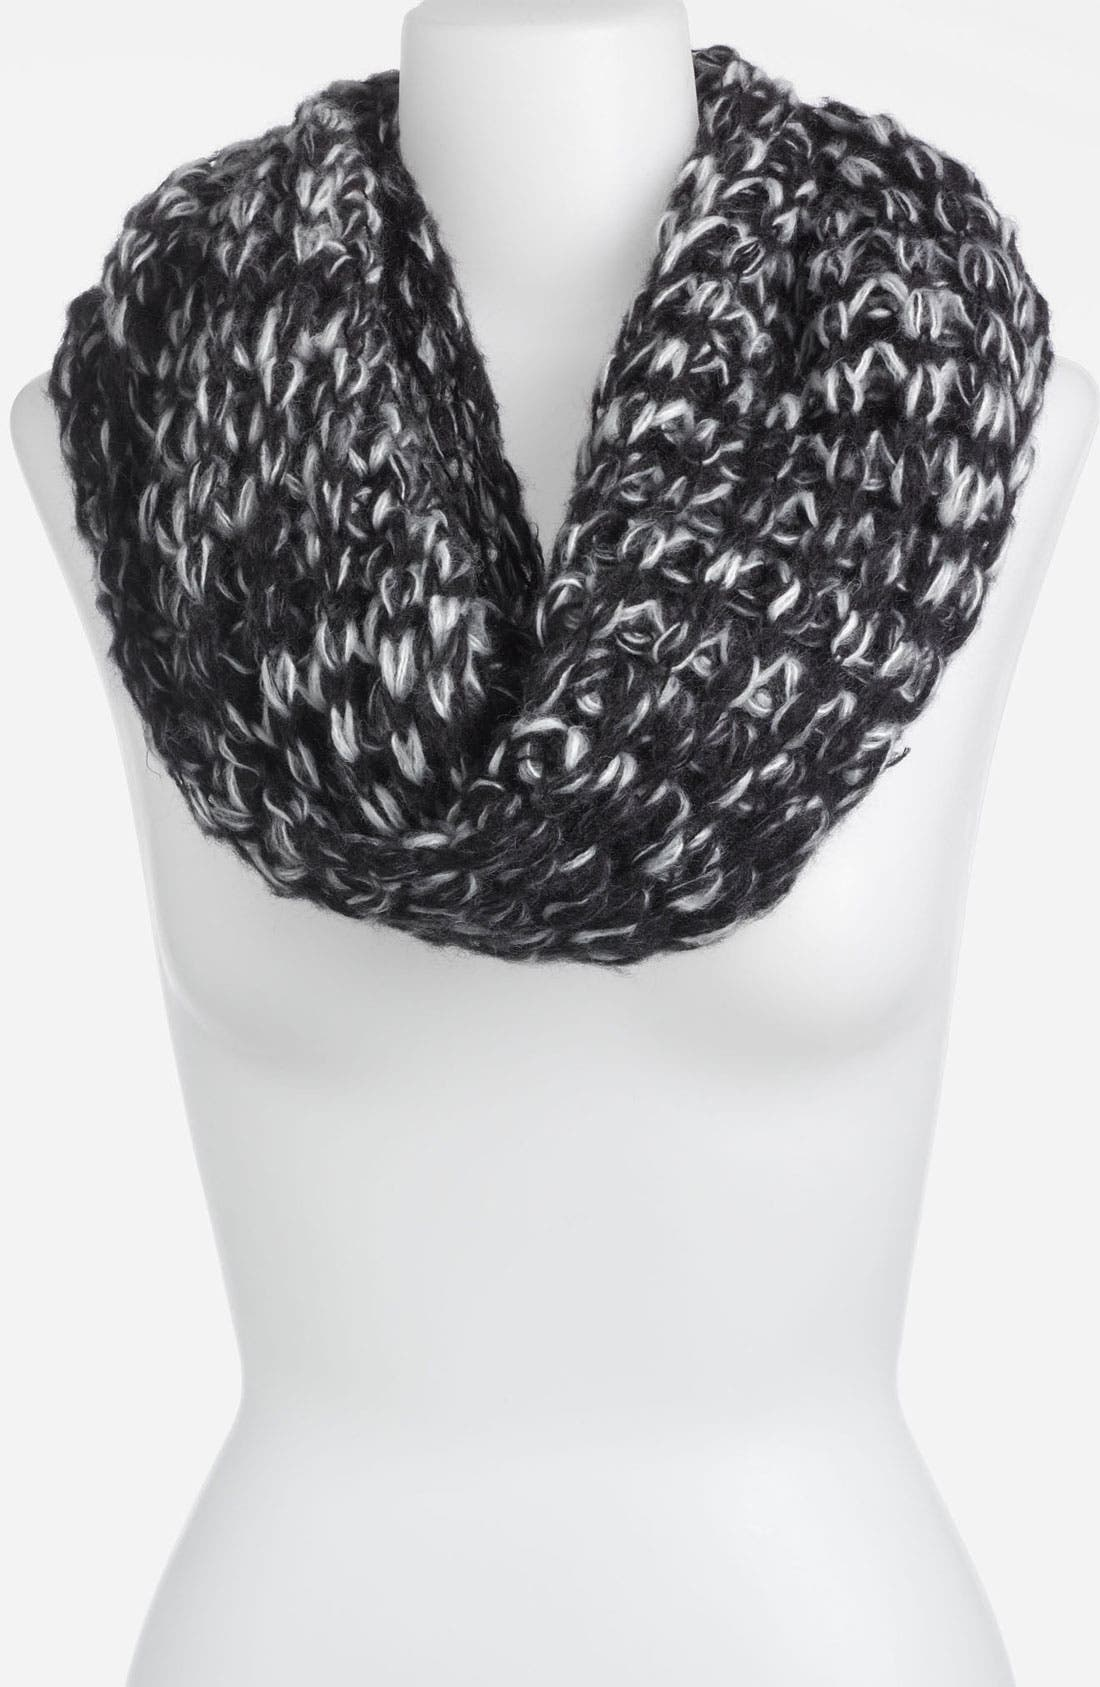 Alternate Image 1 Selected - Collection XIIX Marled Infinity Scarf (Nordstrom Exclusive)